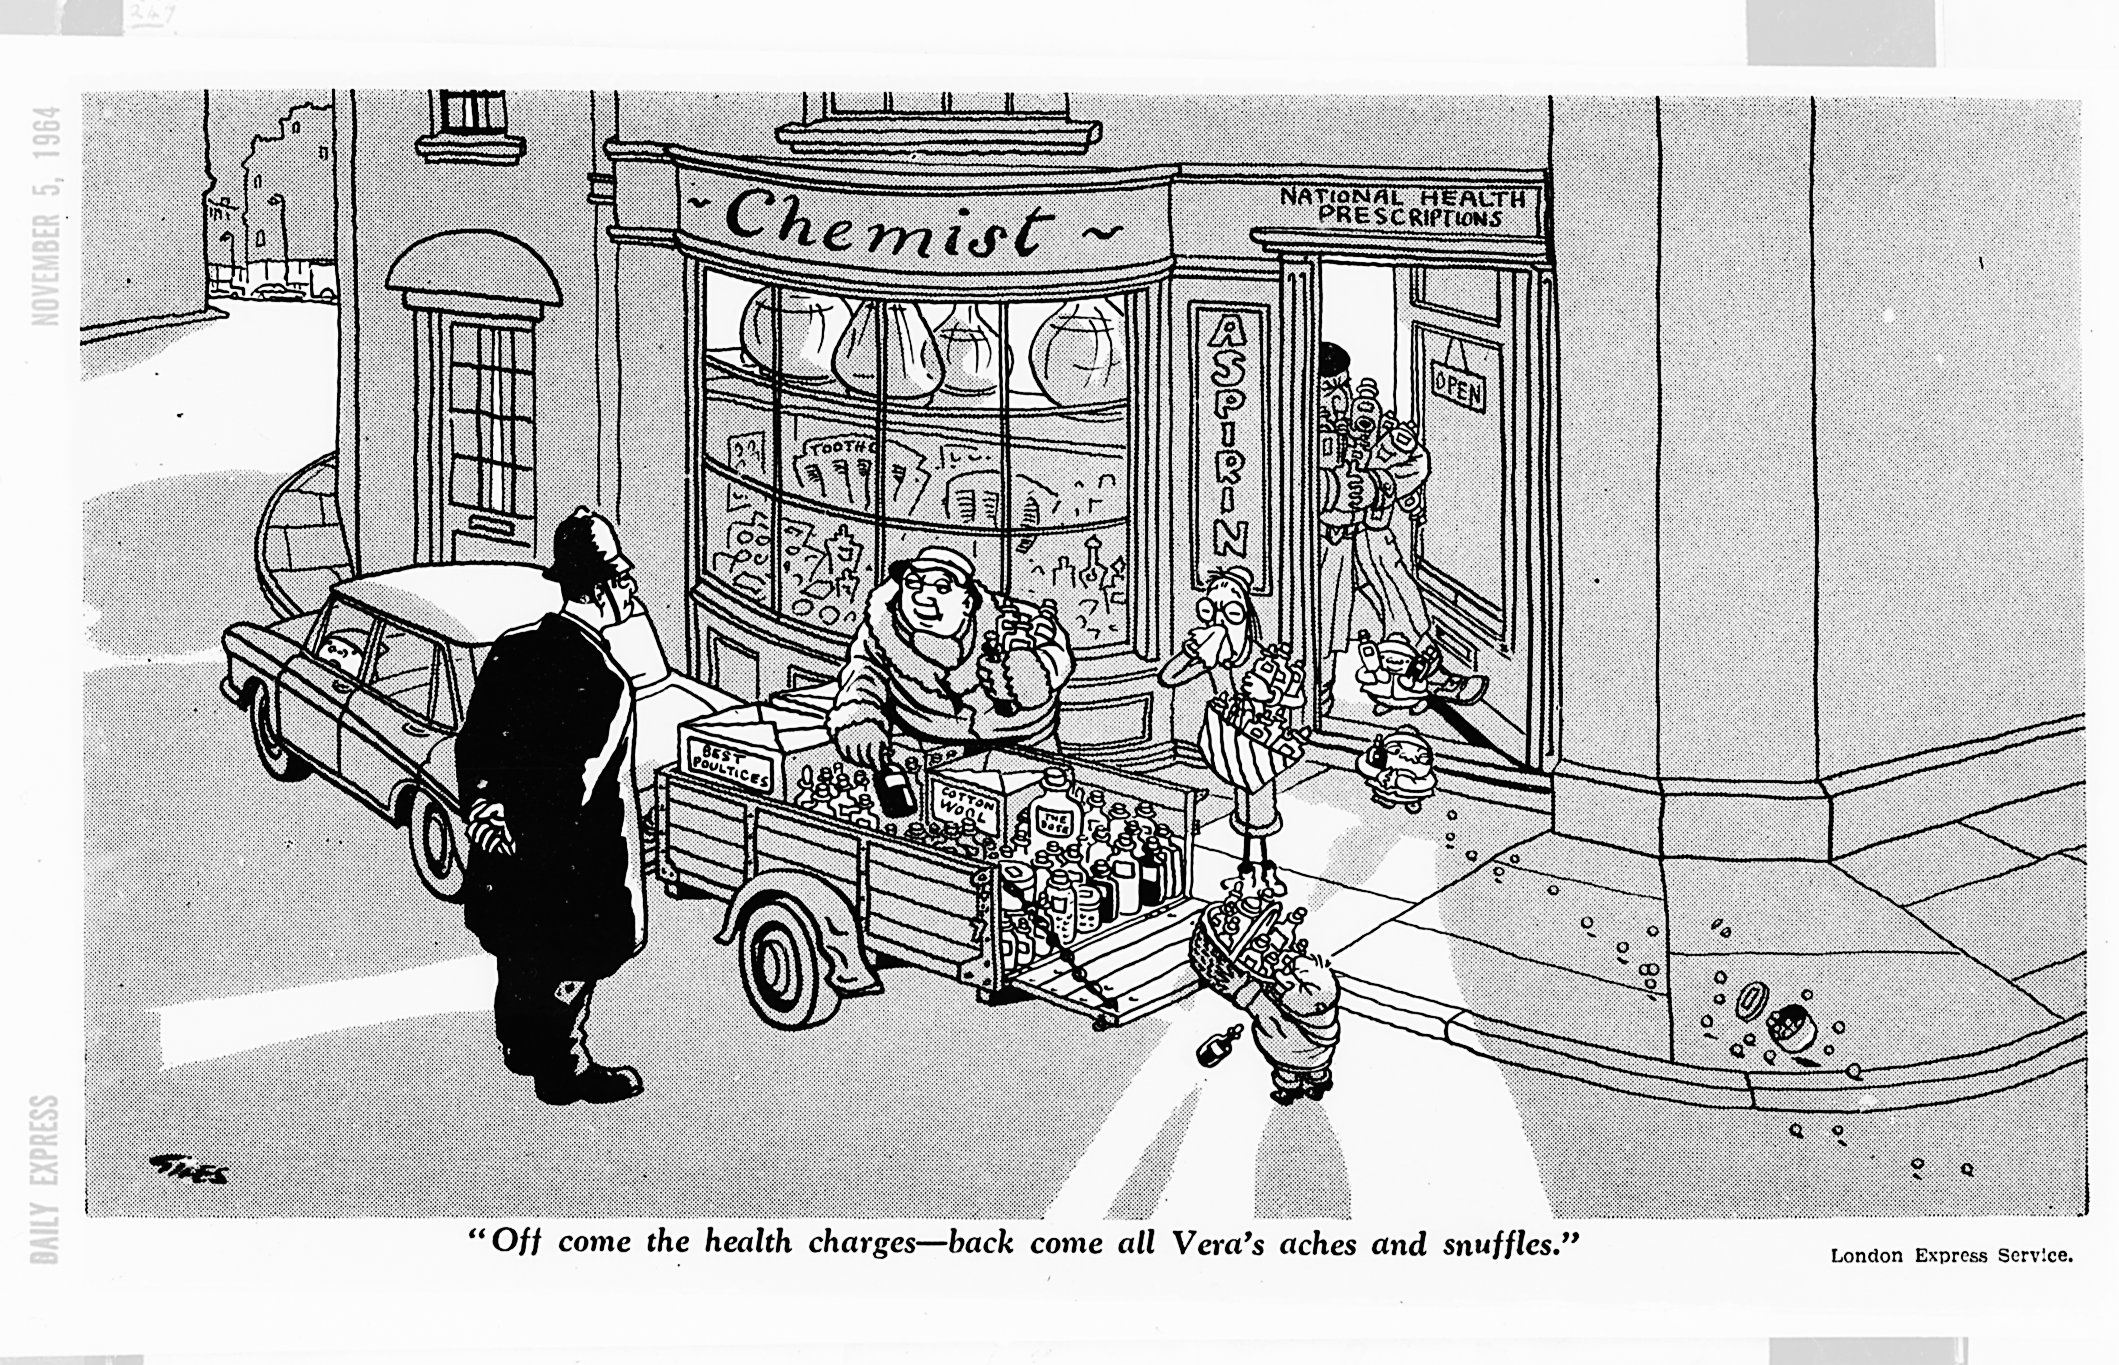 """""""Off come the health charges - back come all Vera's aches and snuffles."""" - Carl Giles, Daily Express, 5 November 1964 (Image ref: GAN1268)"""